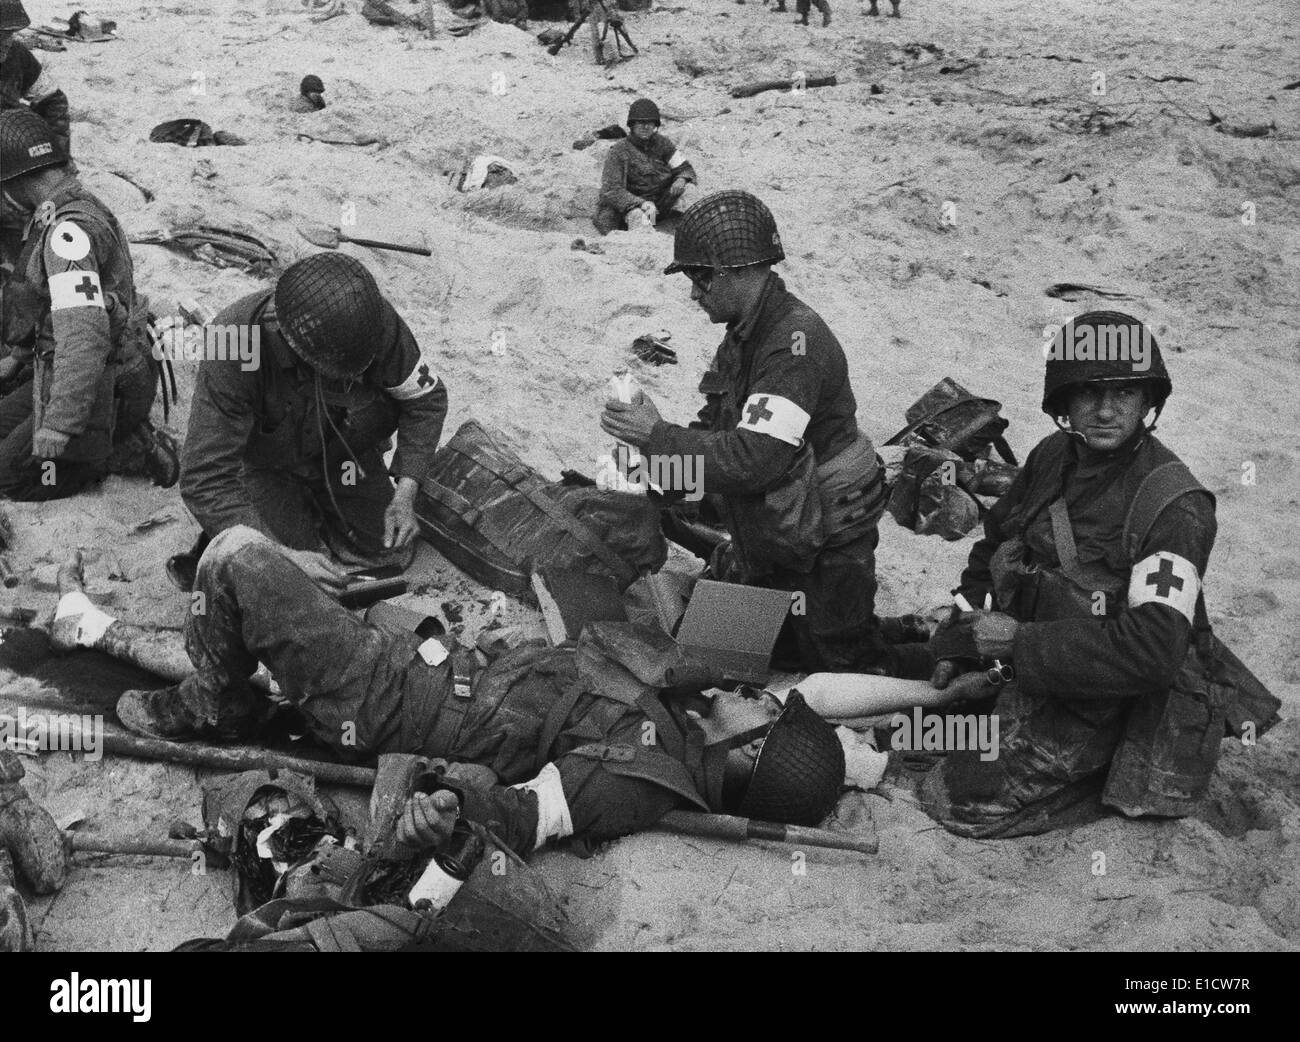 an account of events during the invasion of normandy in 1944 4 beach landings in normandy were chosen instead of the  11 in may 1944  crucial codewords for d-day began appearing in daily telegraph.